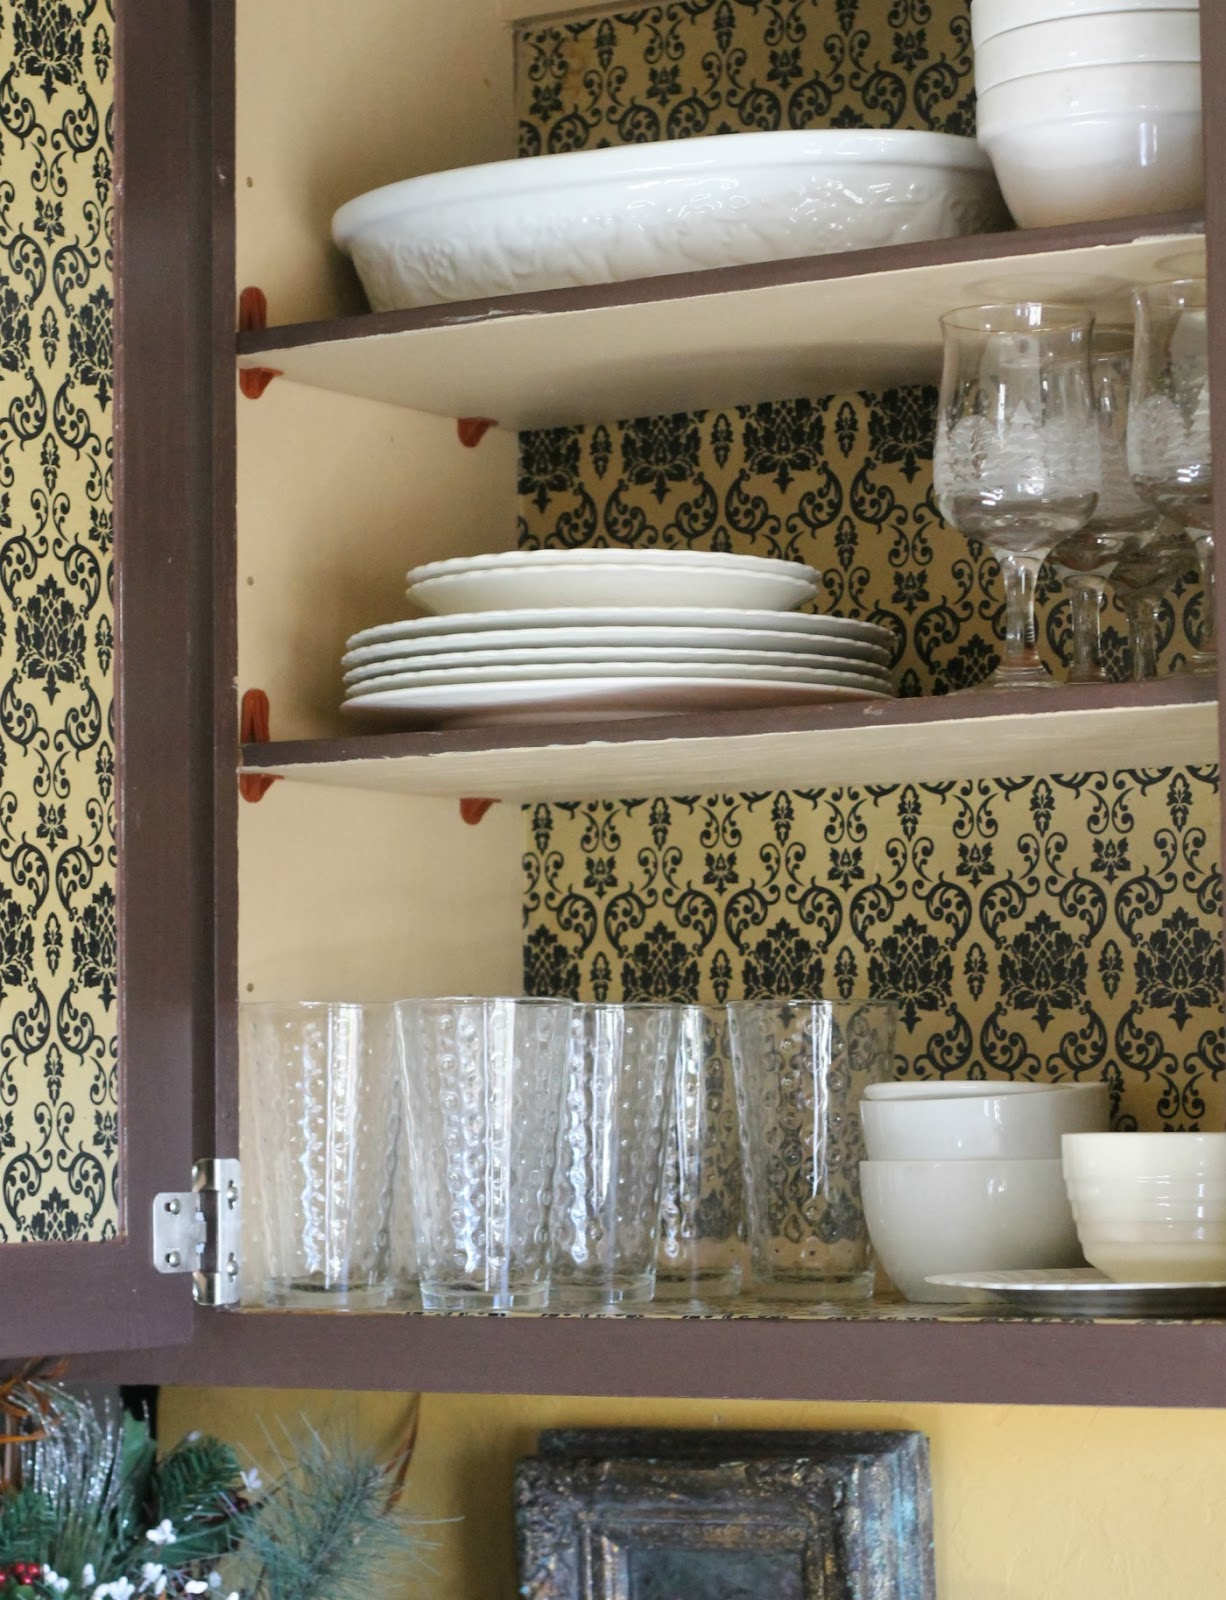 Where Your Treasure Is: Inside the Kitchen Cabinet